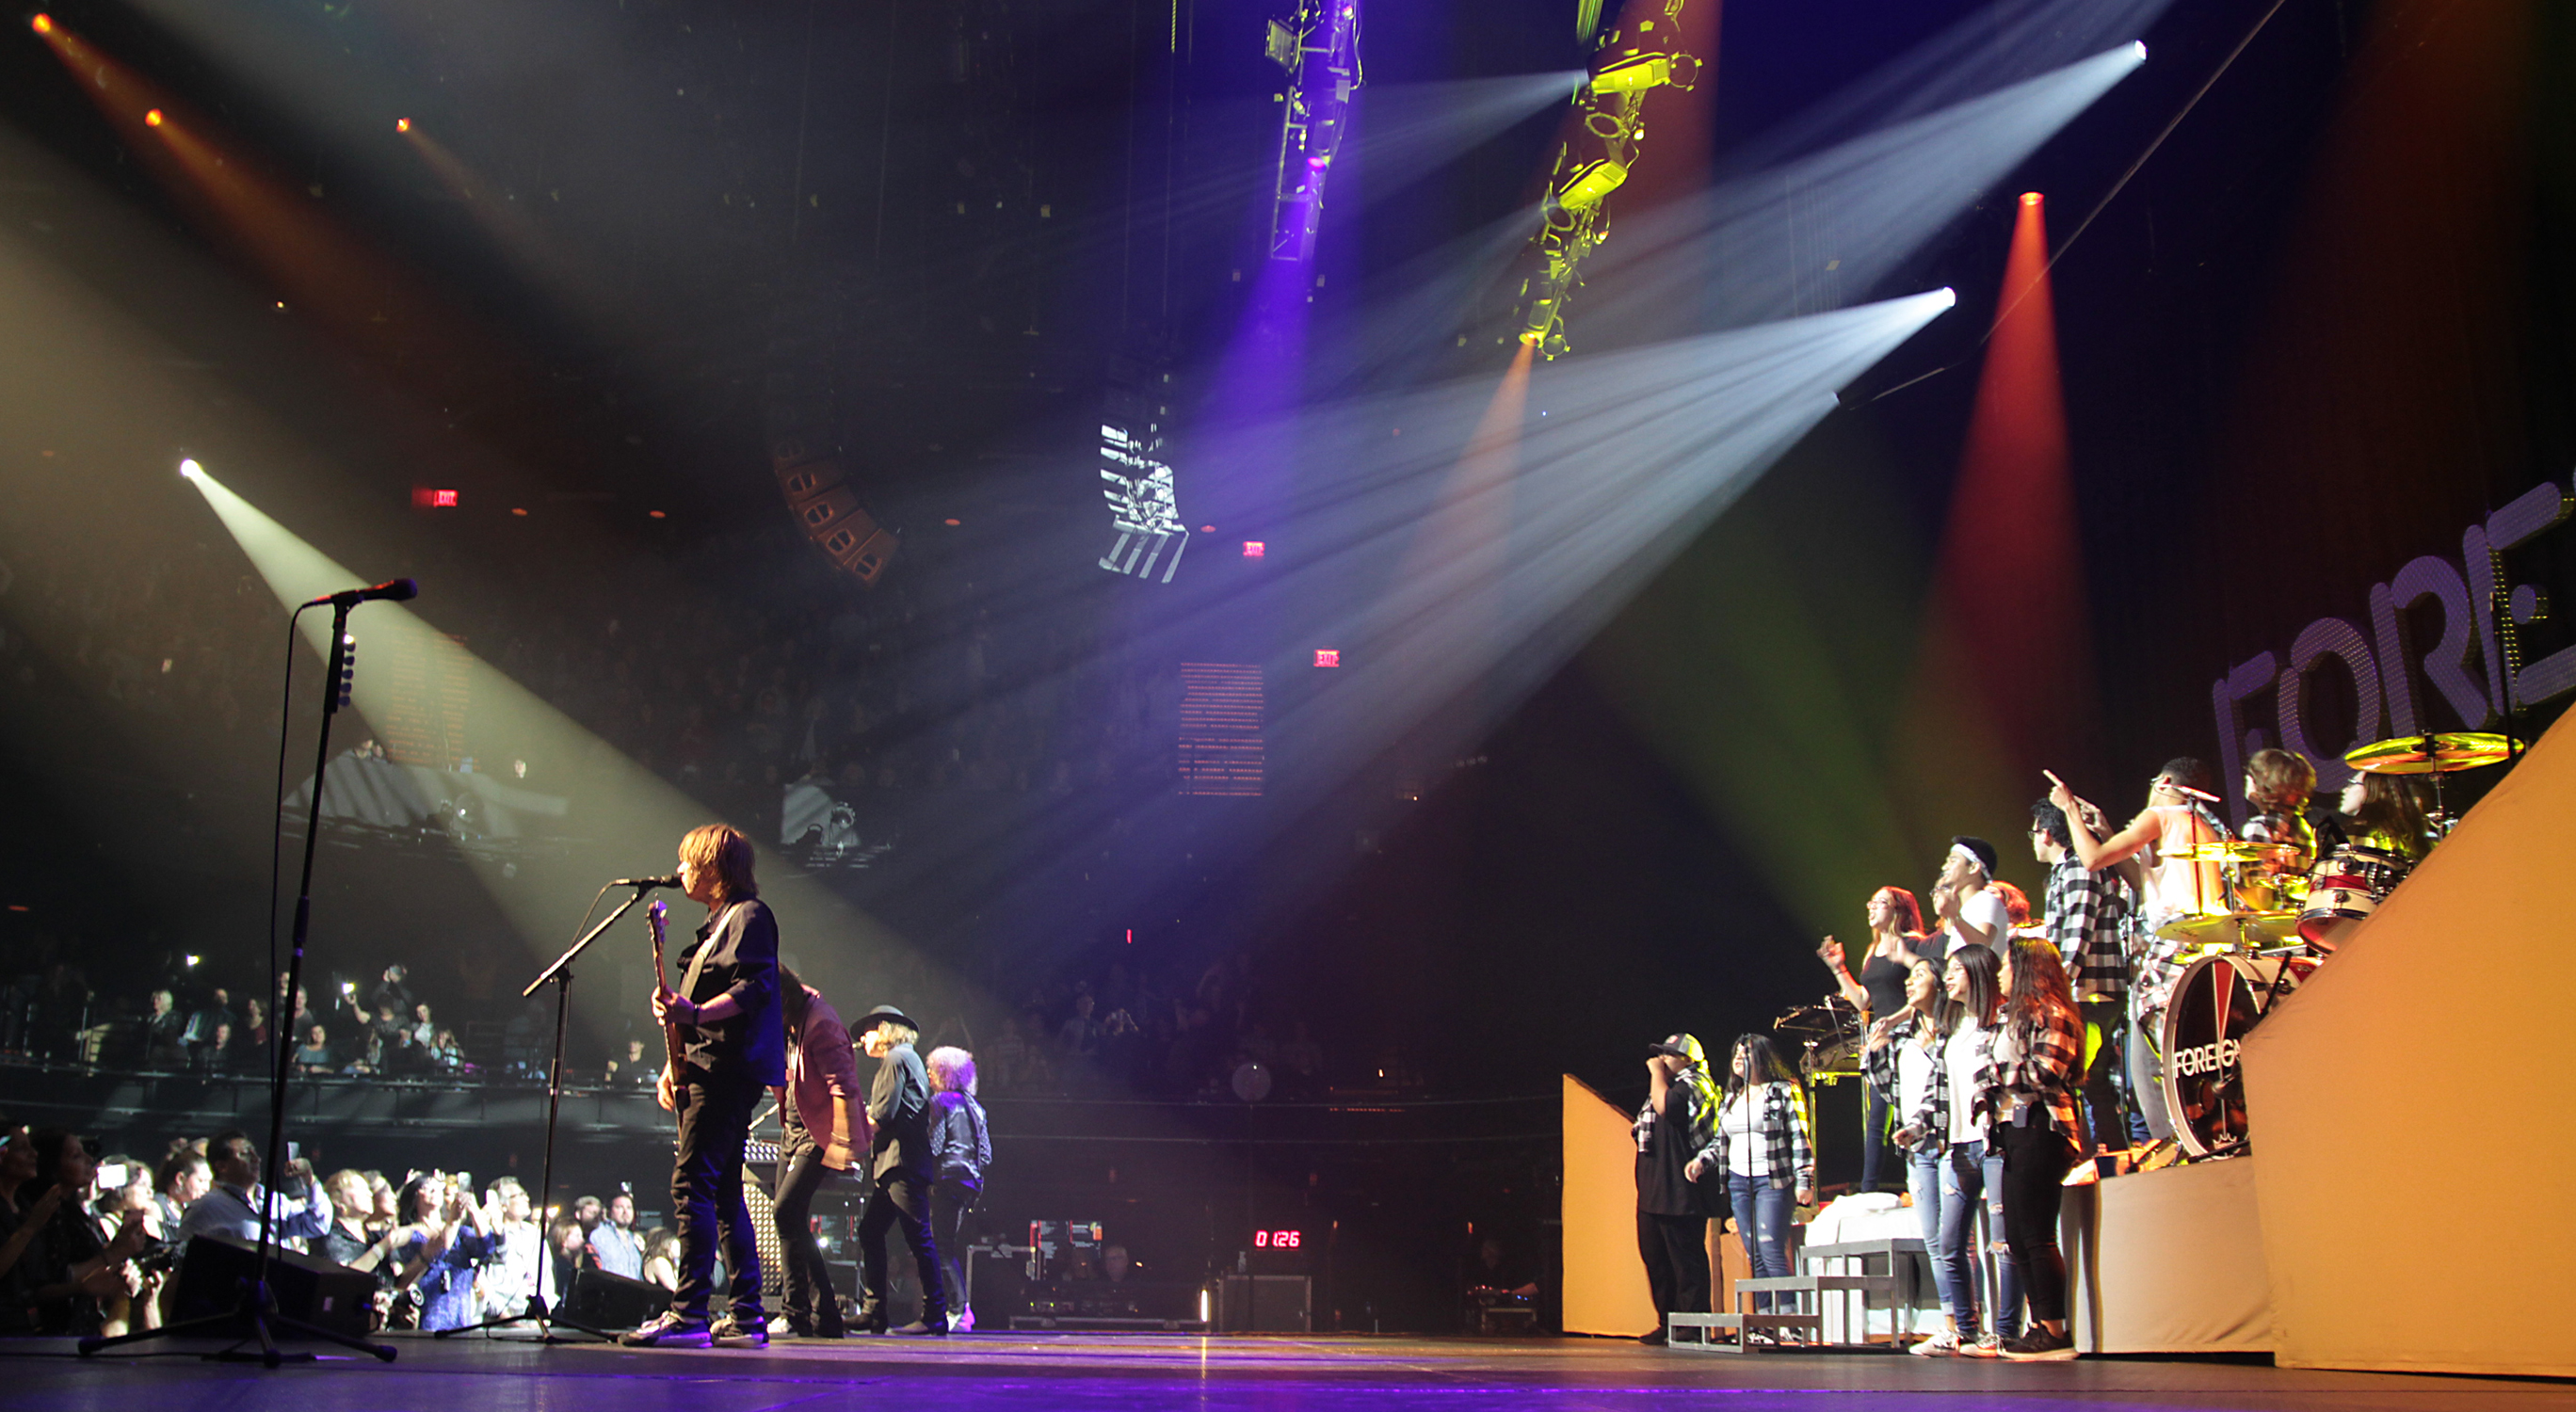 Connally High School students were chosen to perform with Foreigner following a contest last year (PfISD Photo)